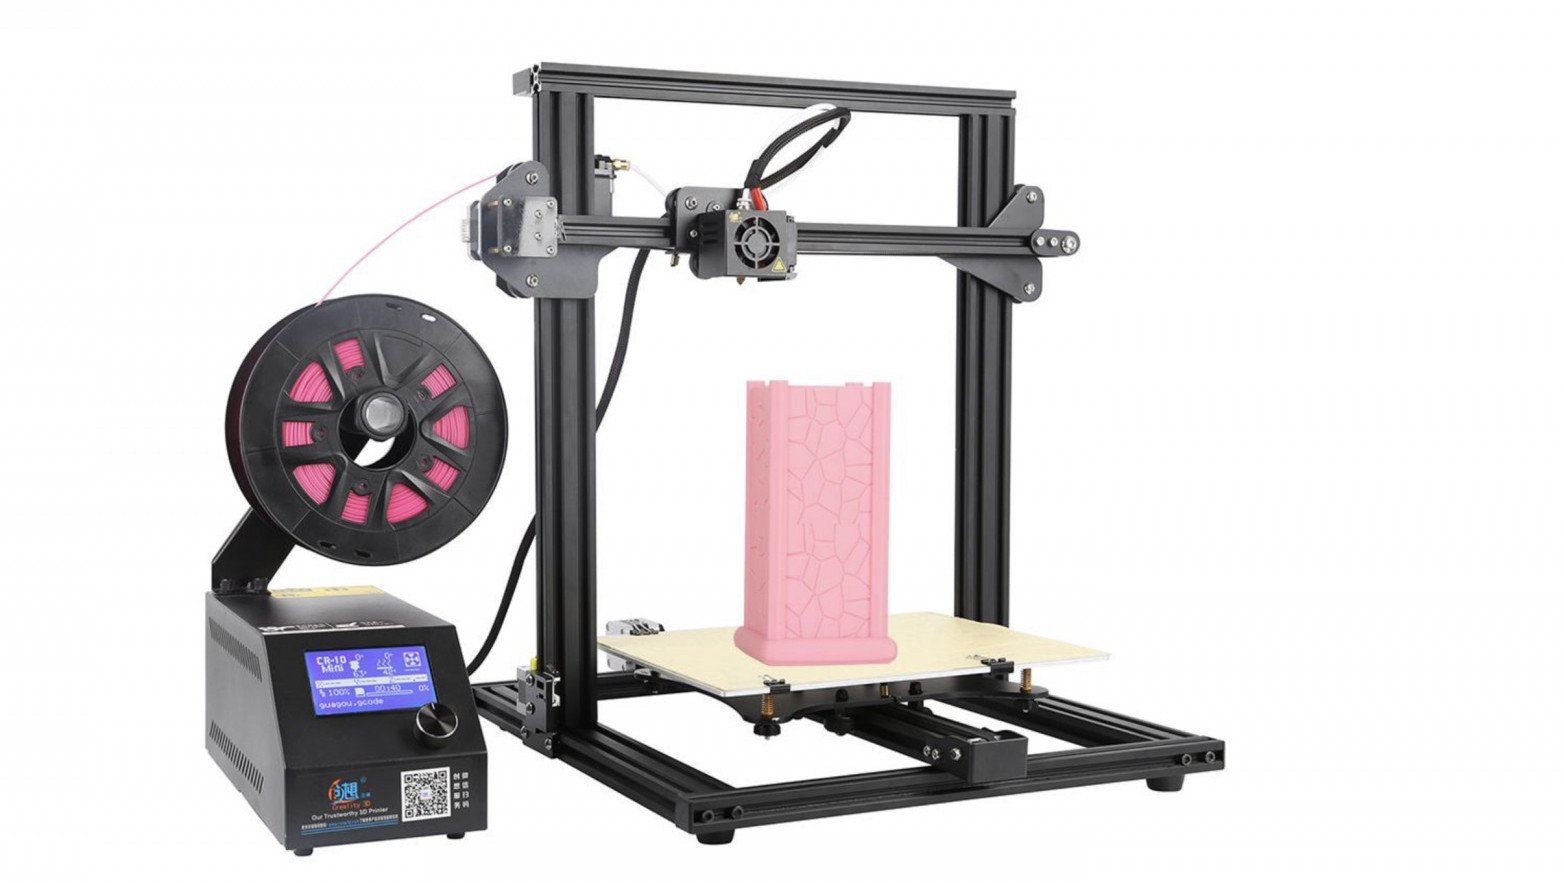 Creality CR-10 Mini: Review the Specs | All3DP